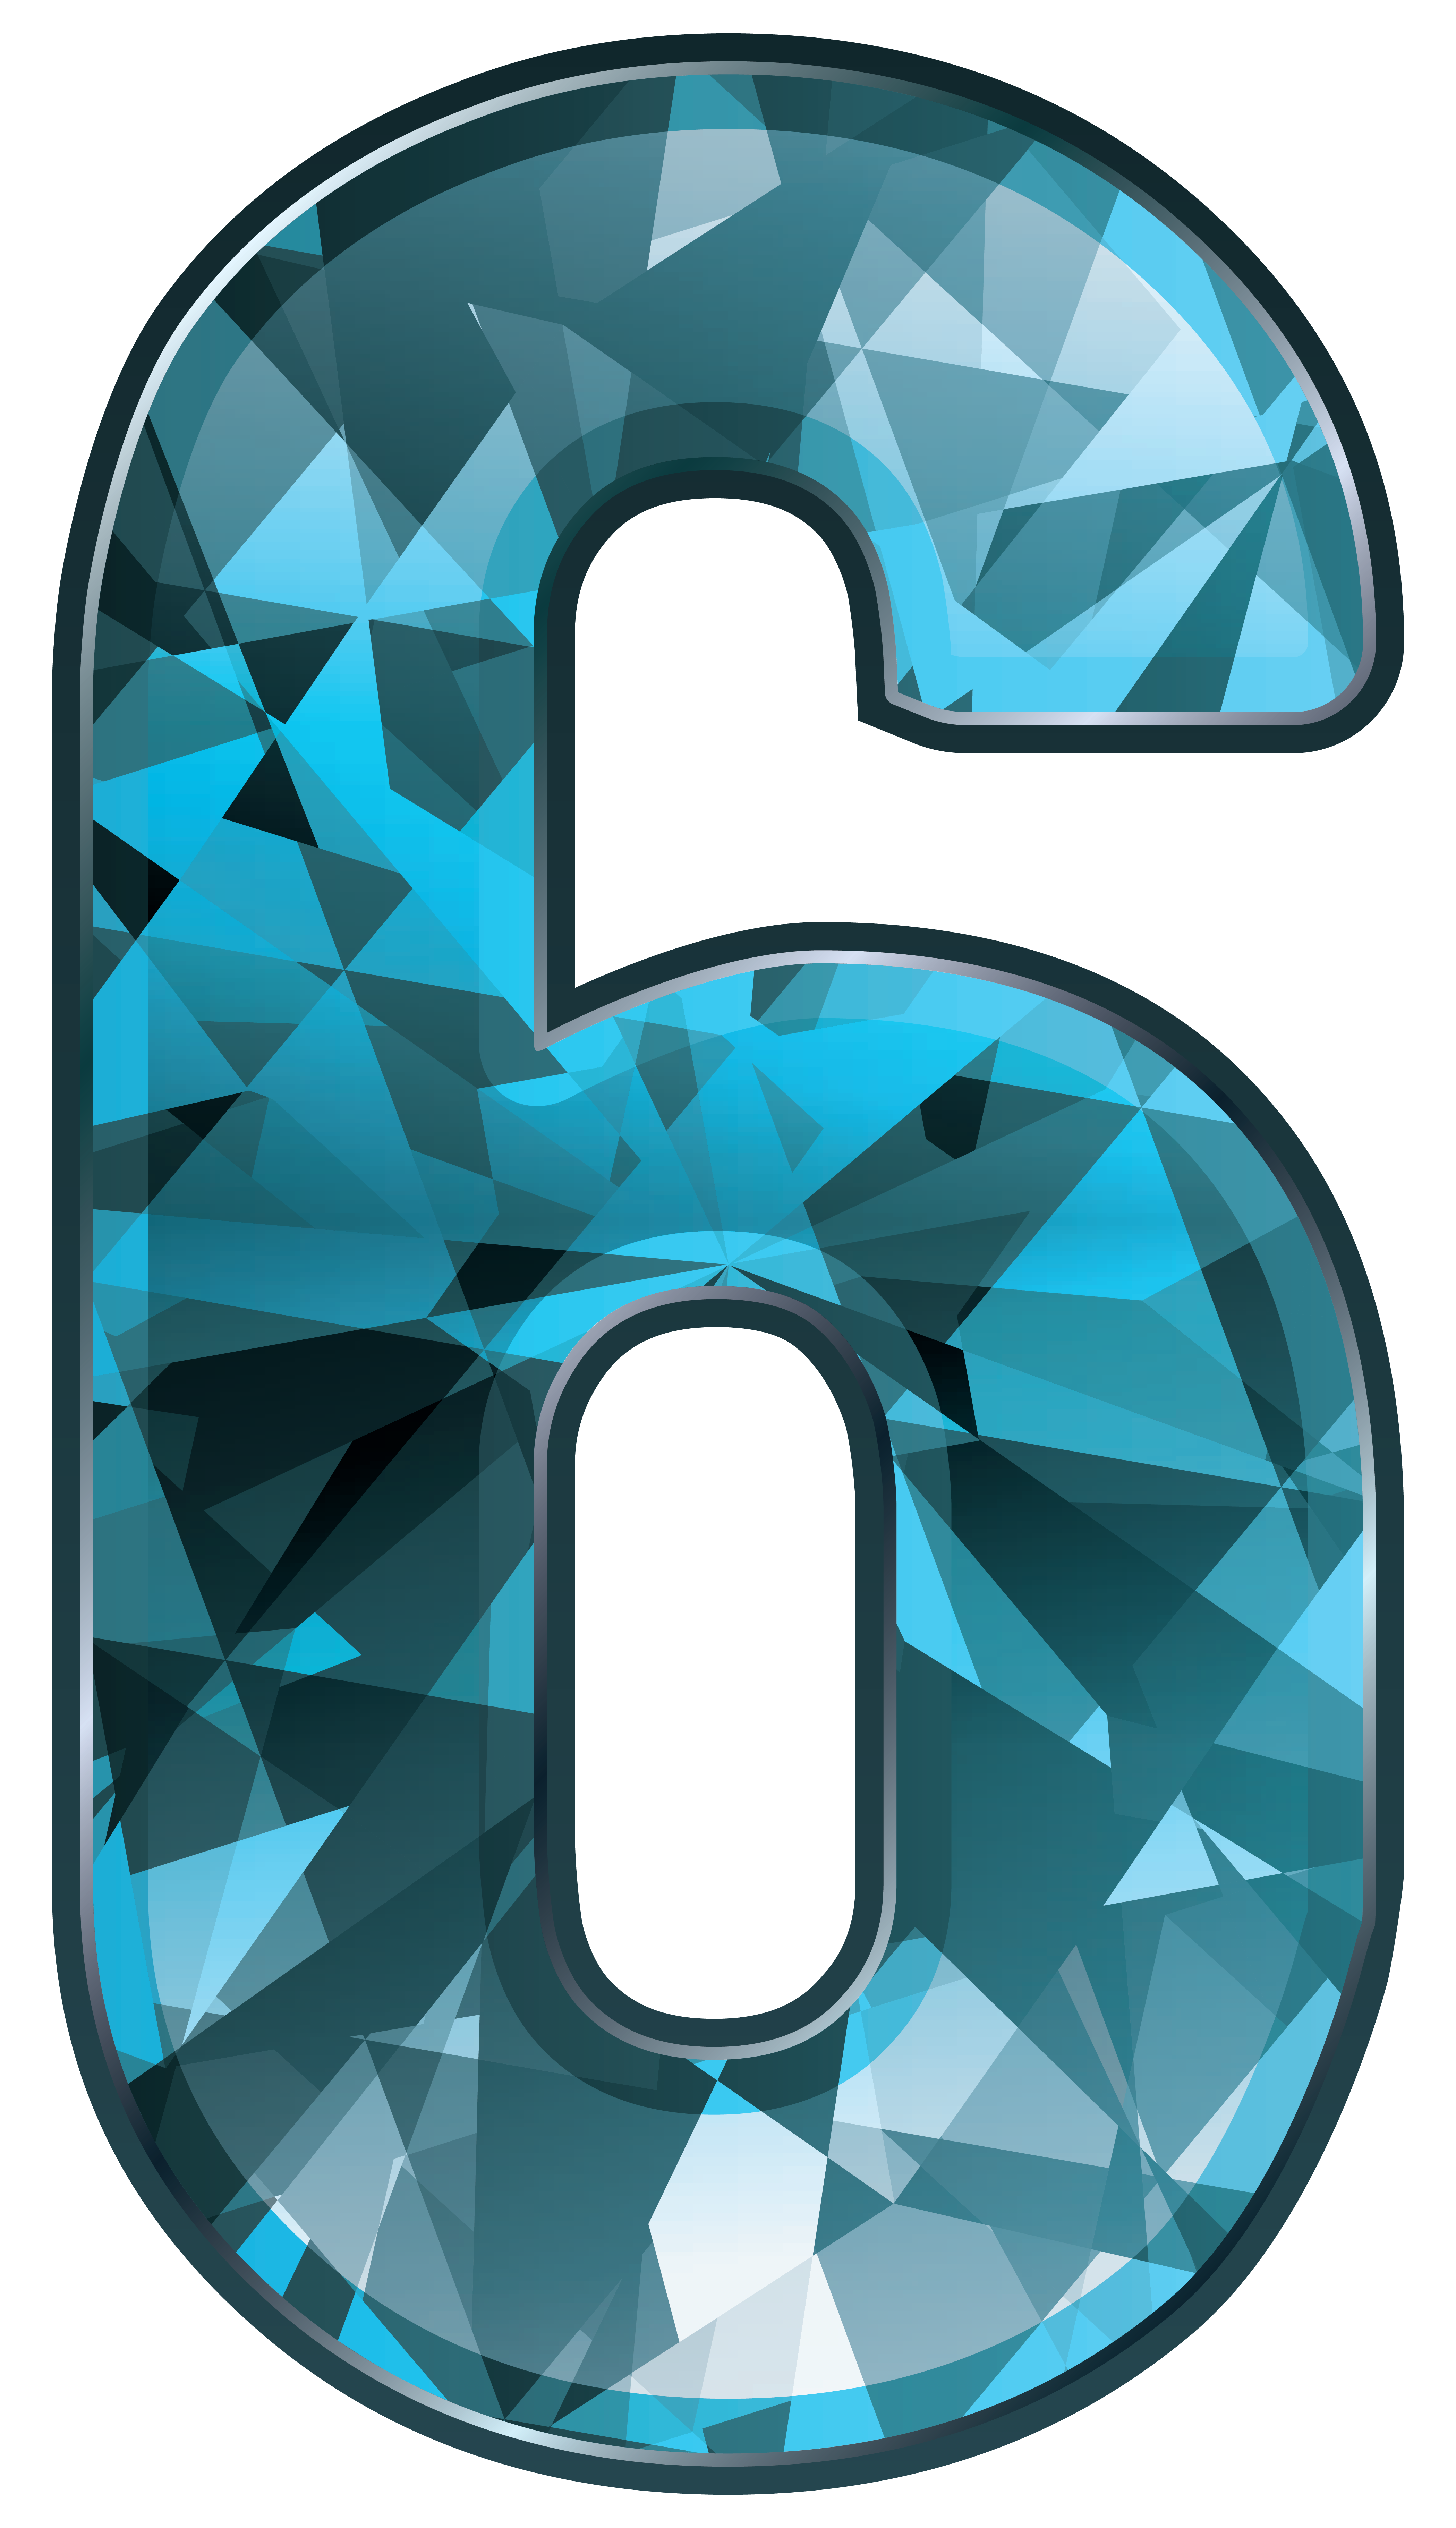 Crystal clipart blue crystal. Number six png image